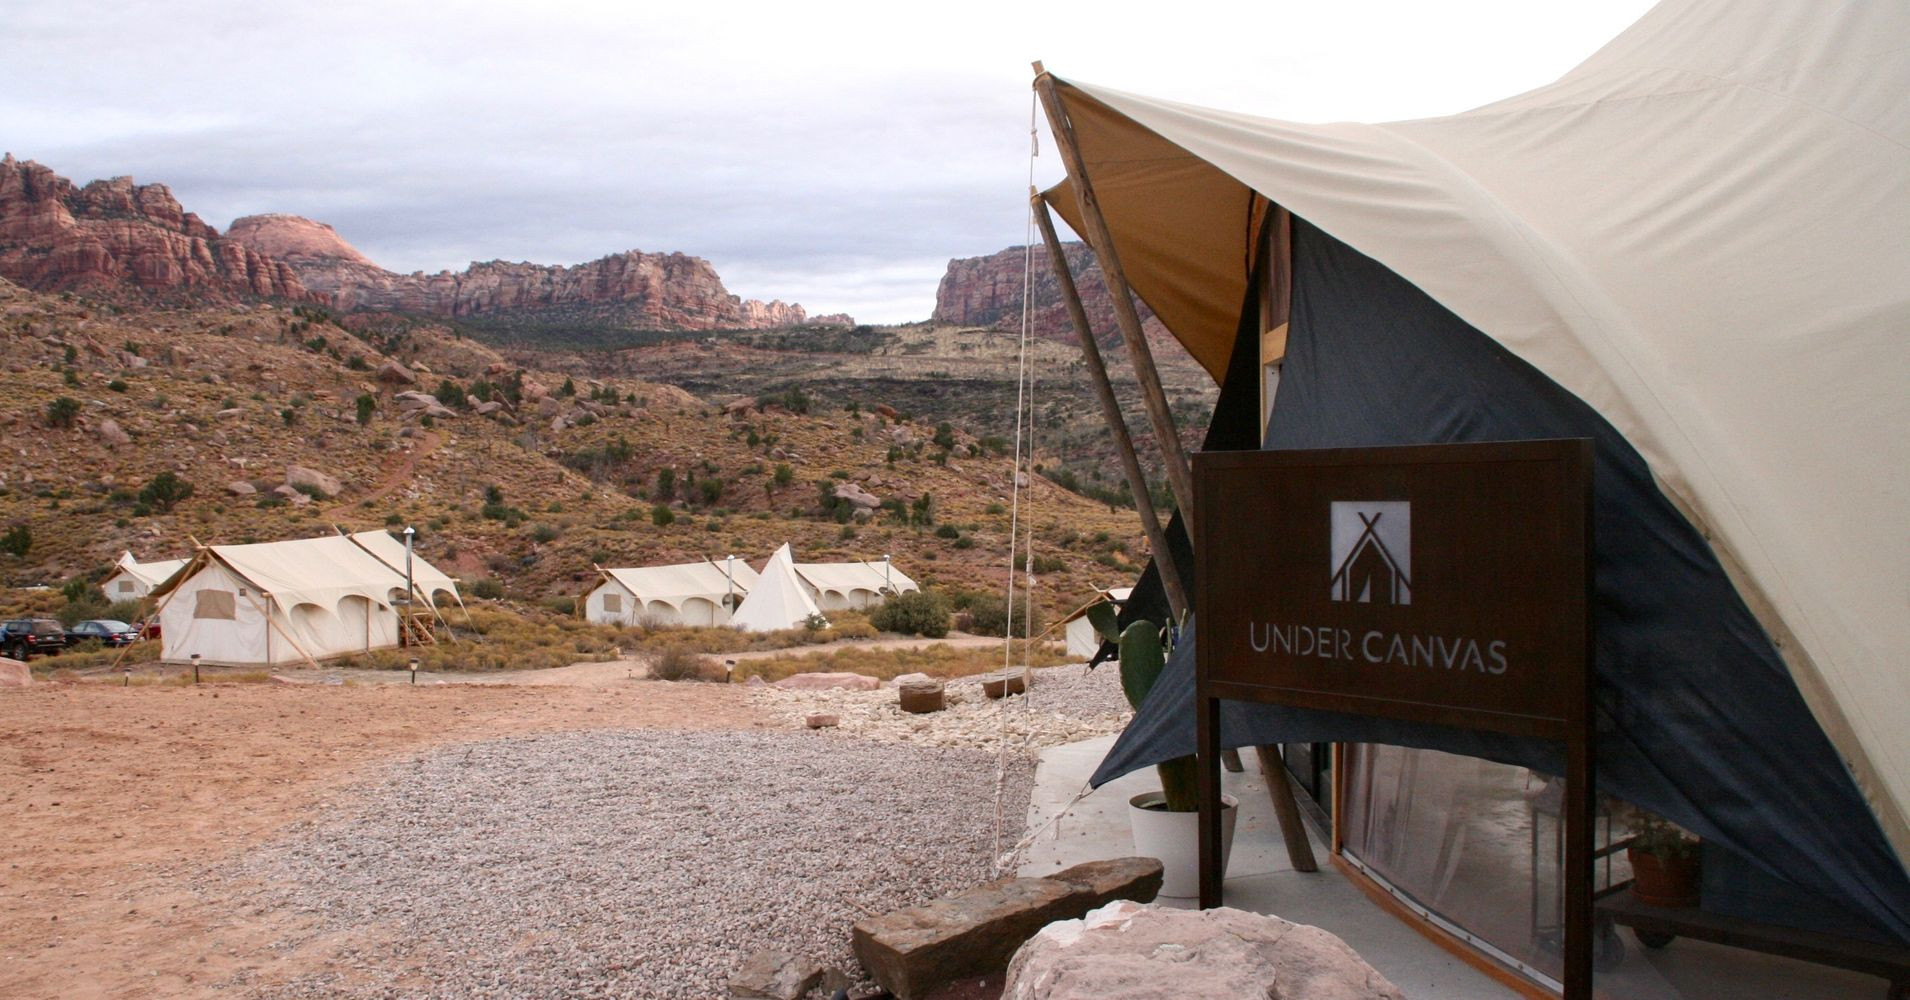 under canvas takes glamping to the next level in zion